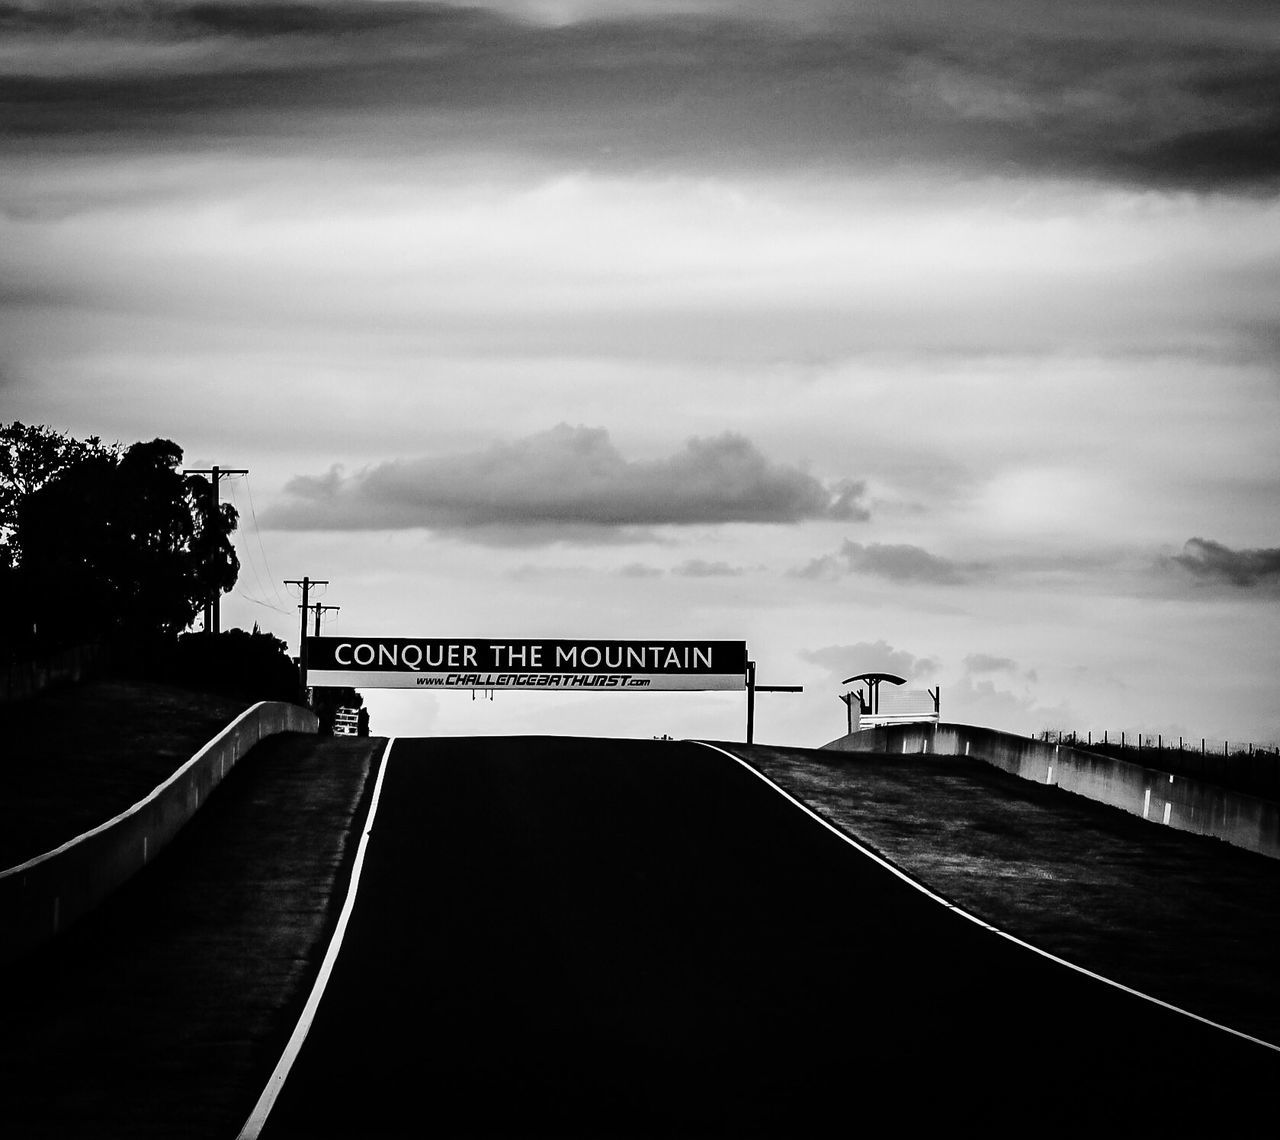 Conquer the Mountain Mount Panorama Bathurst Australia Empty Racetrack Race Track Public Road Motorsport Black And White Collection  Communication Text Cloud - Sky Transportation Sky Direction Guidance No People Road Road Sign Outdoors Day Travel Destinations